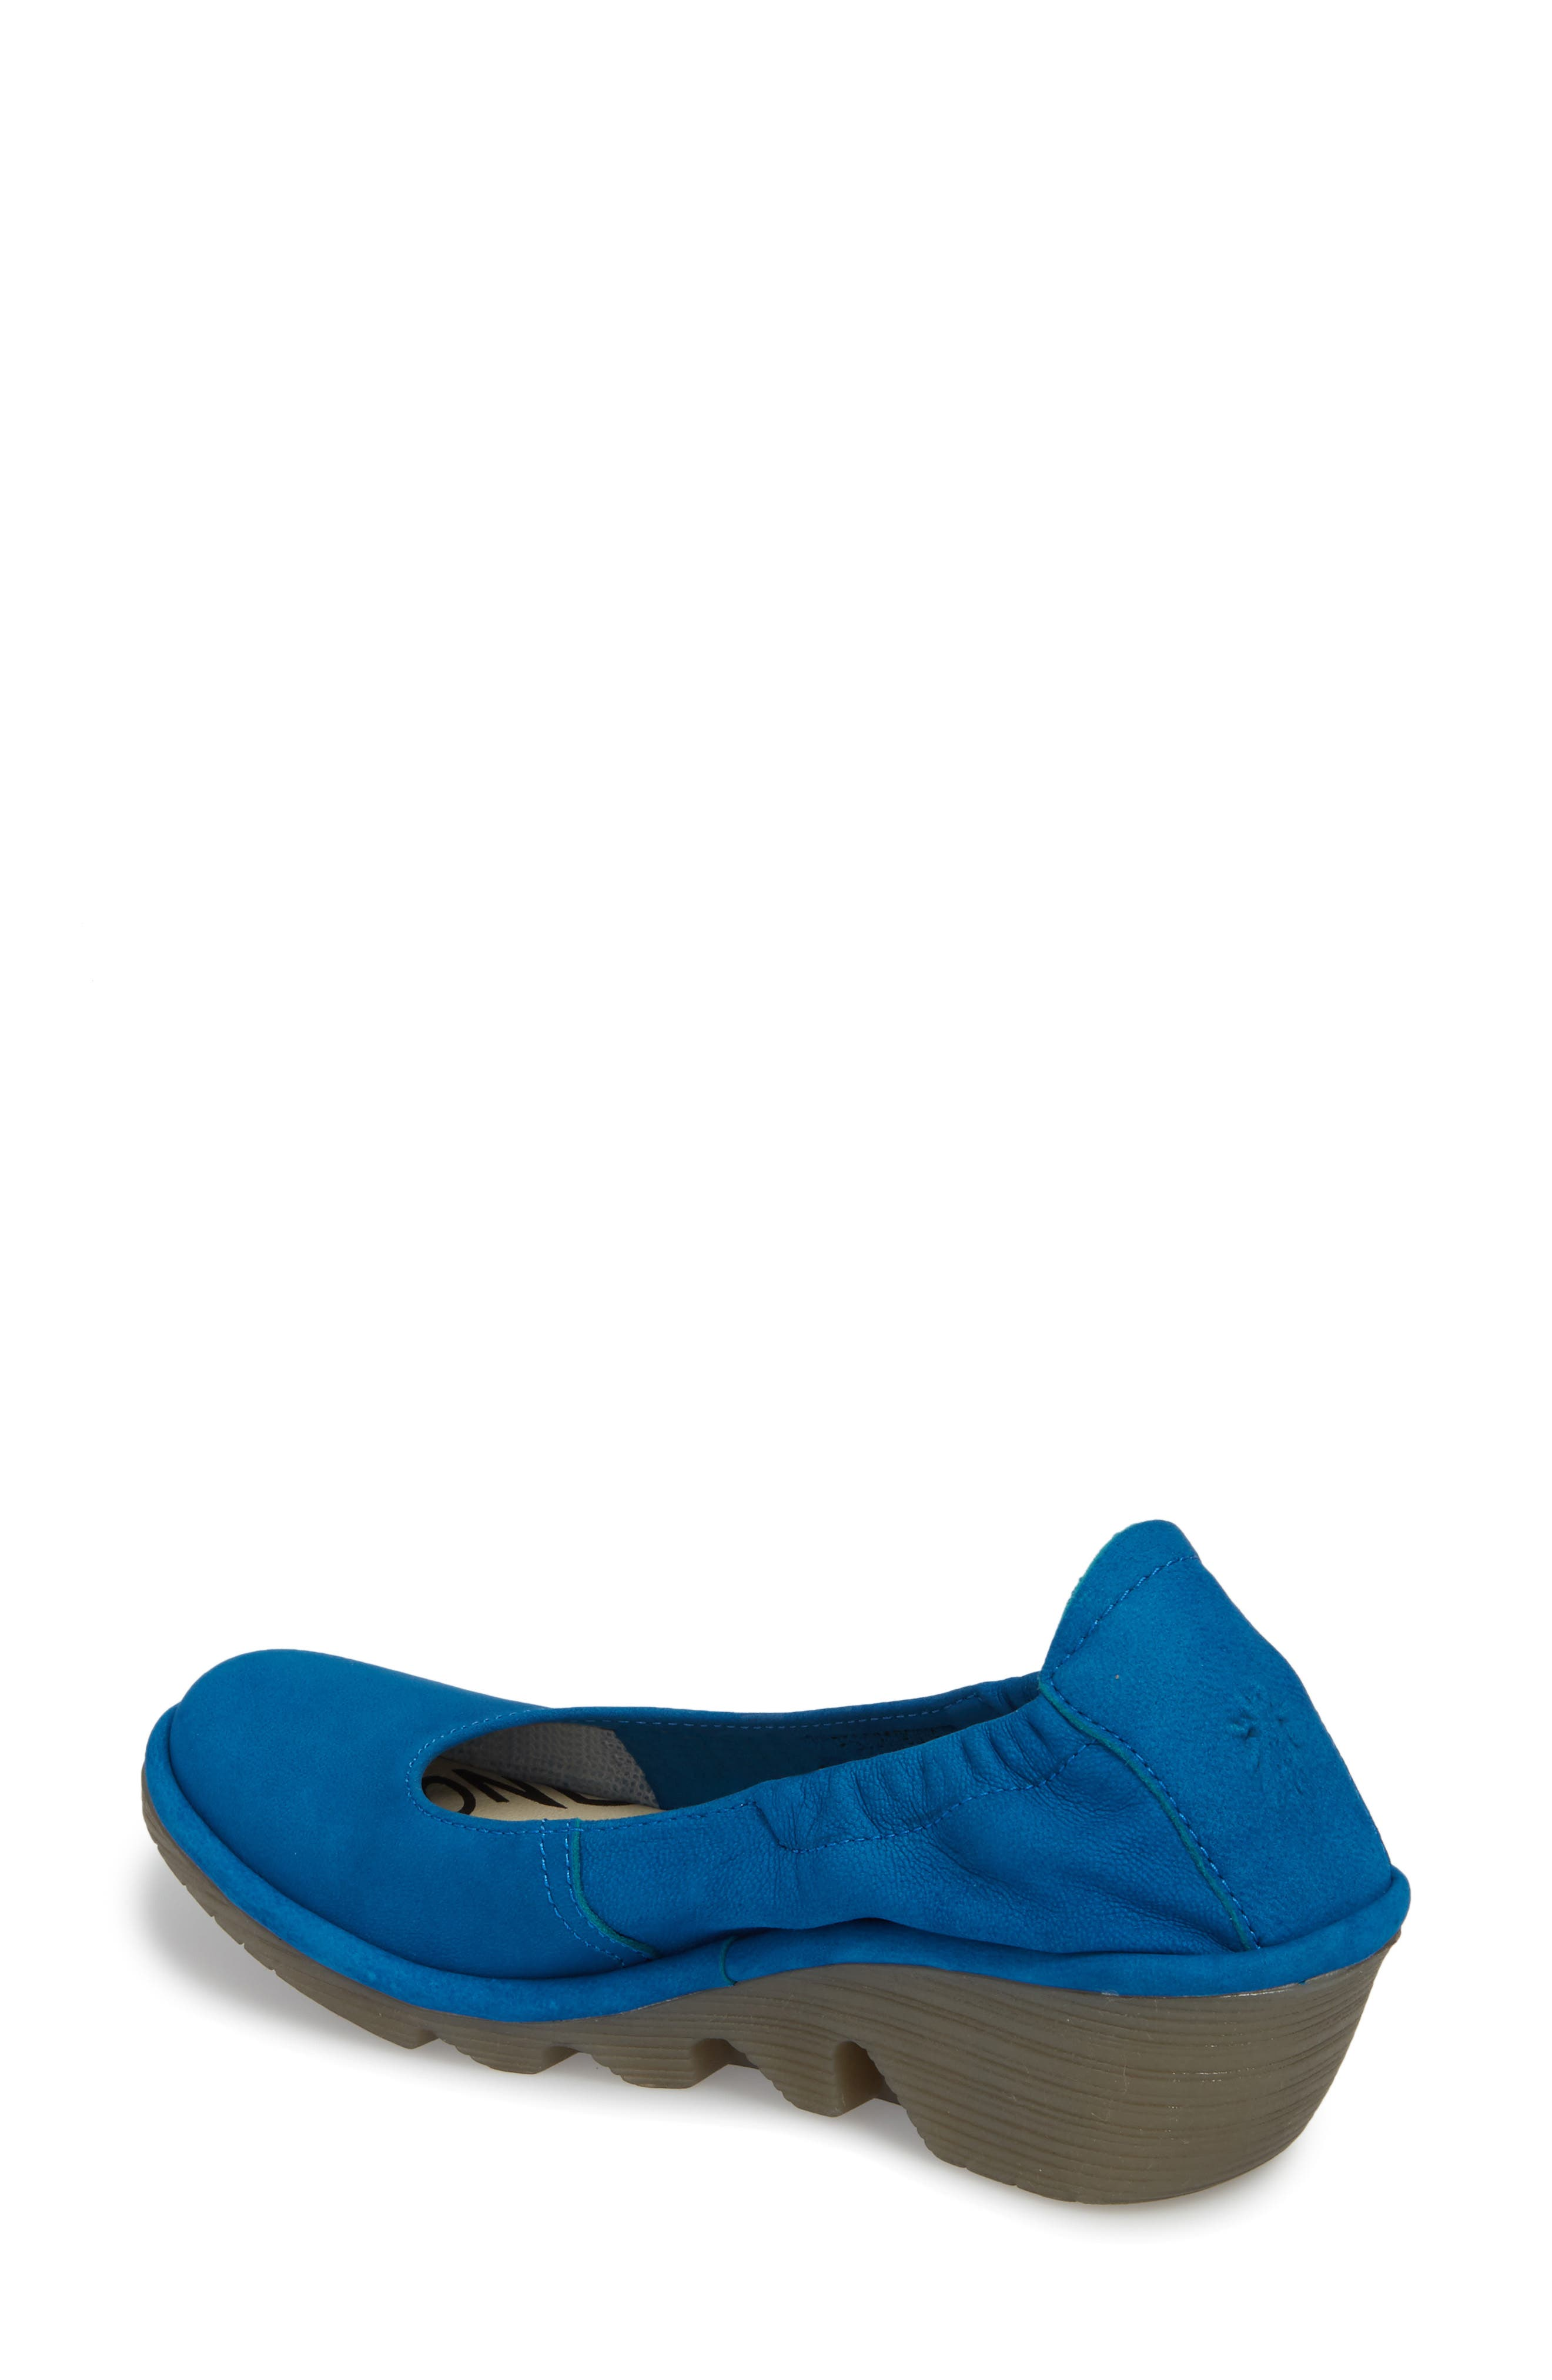 Pled Wedge,                             Alternate thumbnail 2, color,                             ELECTRIC BLUE CUPIDO LEATHER